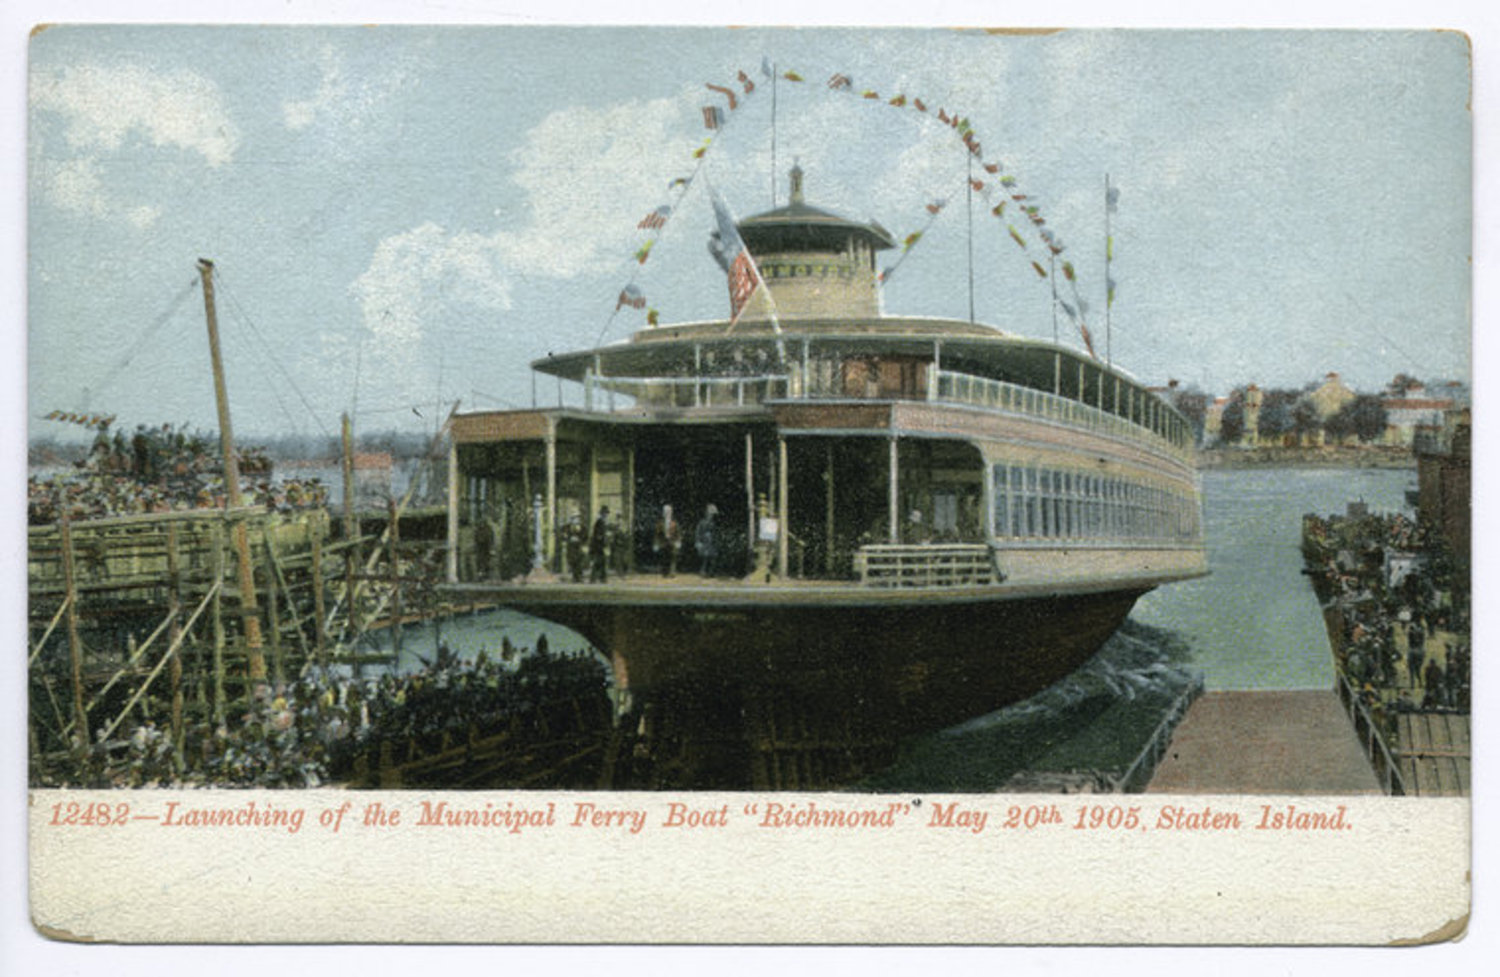 Launching of the Municipal Ferry Richmond on May 20th 1905.